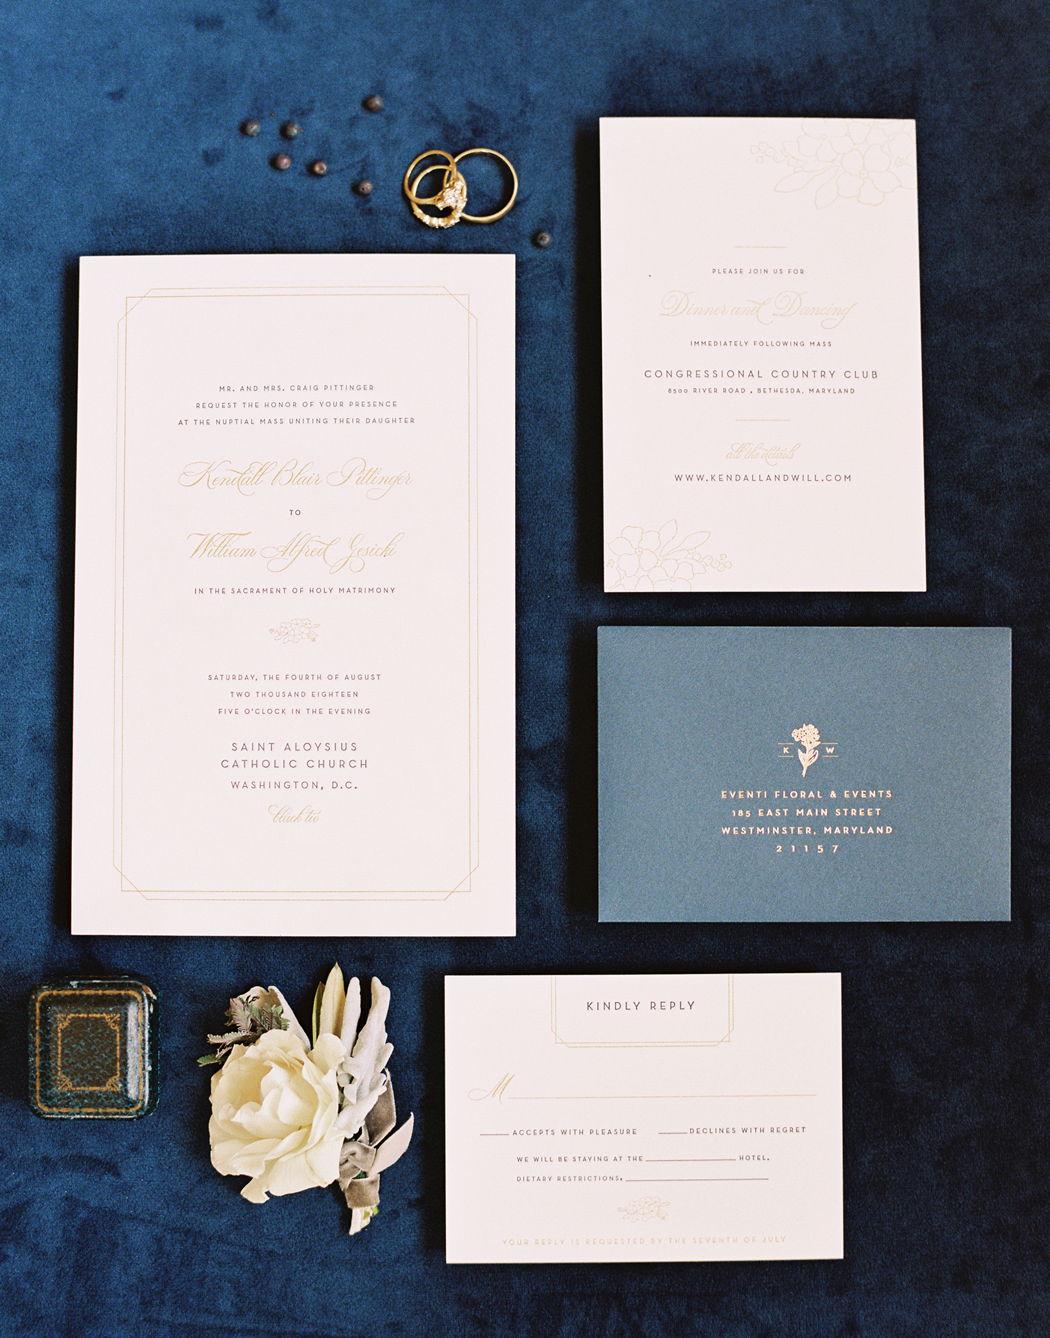 deep blue and white stationary suit with gold calligraphy